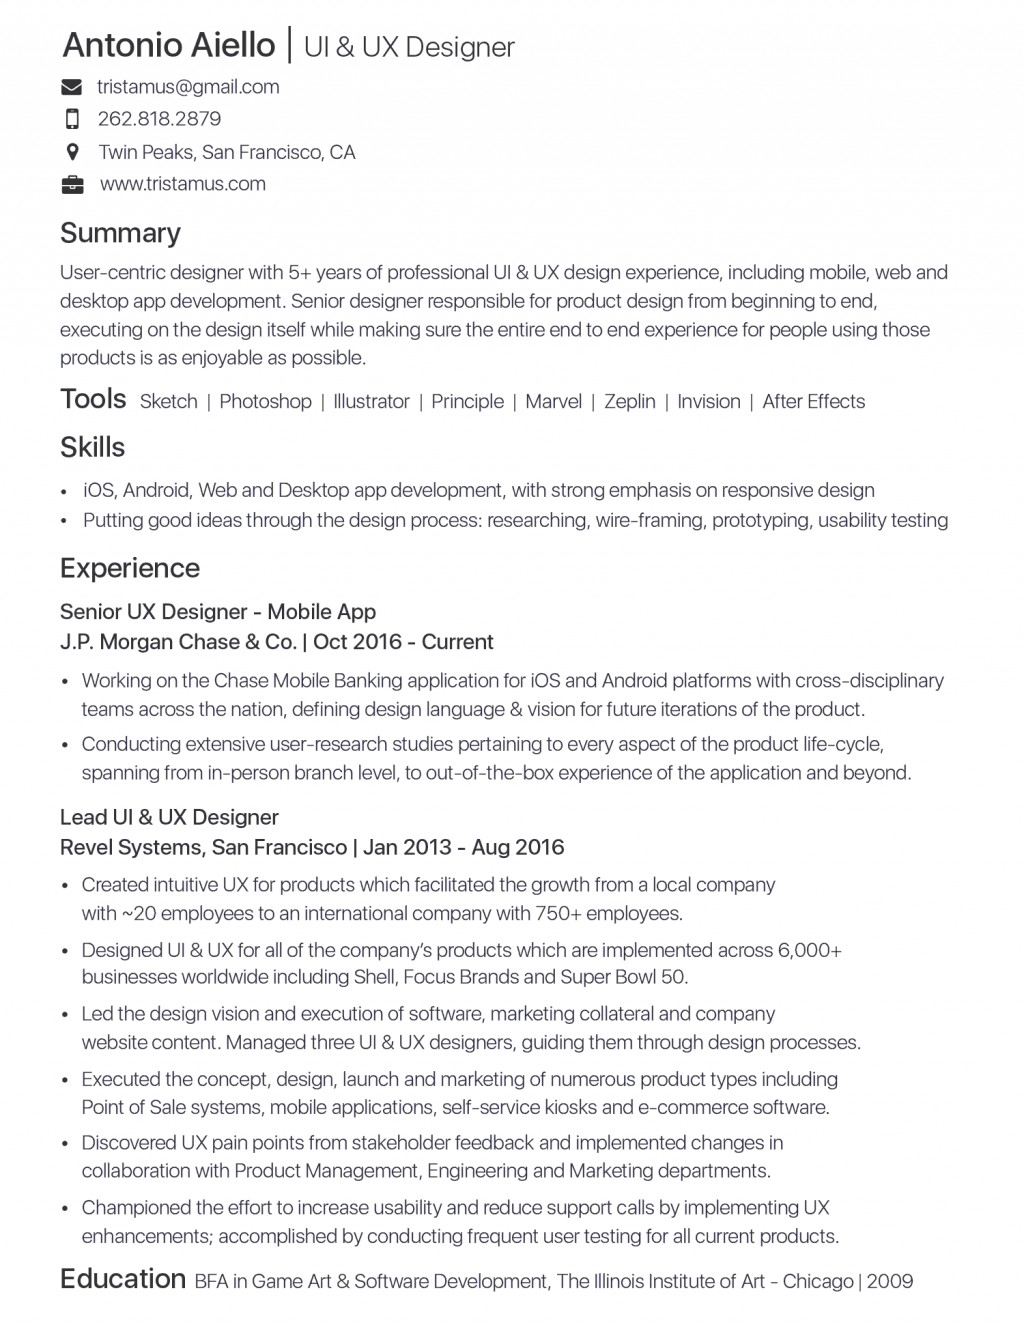 002 Type Your Essay Online Brilliant Ideas Of Who Can Write Me An Extraordinary Lead Game Designer Resume On Antonio Free For Stirring Where I Large